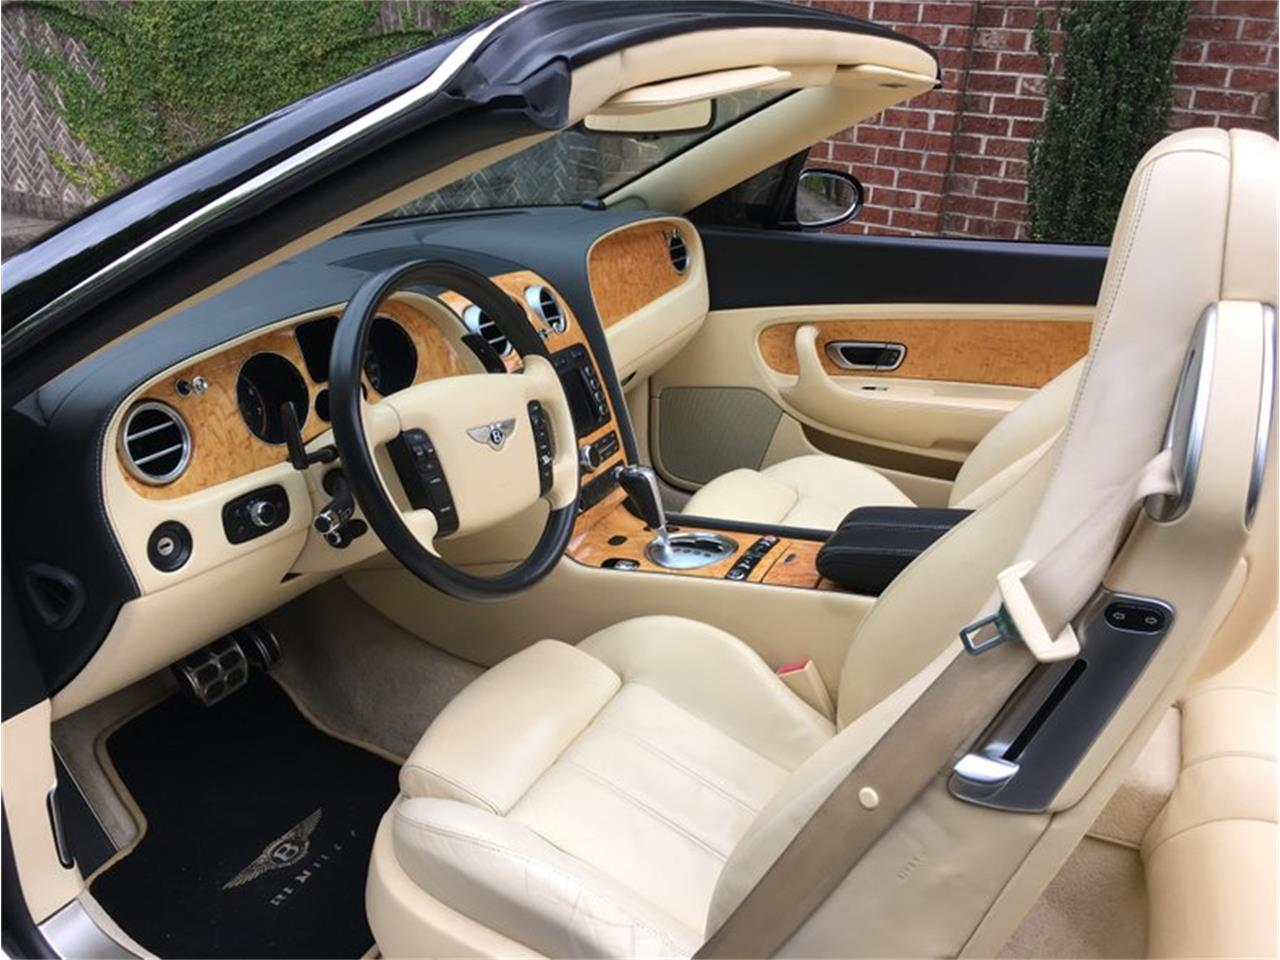 Large Picture of '07 Continental located in North Carolina Auction Vehicle Offered by GAA Classic Cars Auctions - QD6O